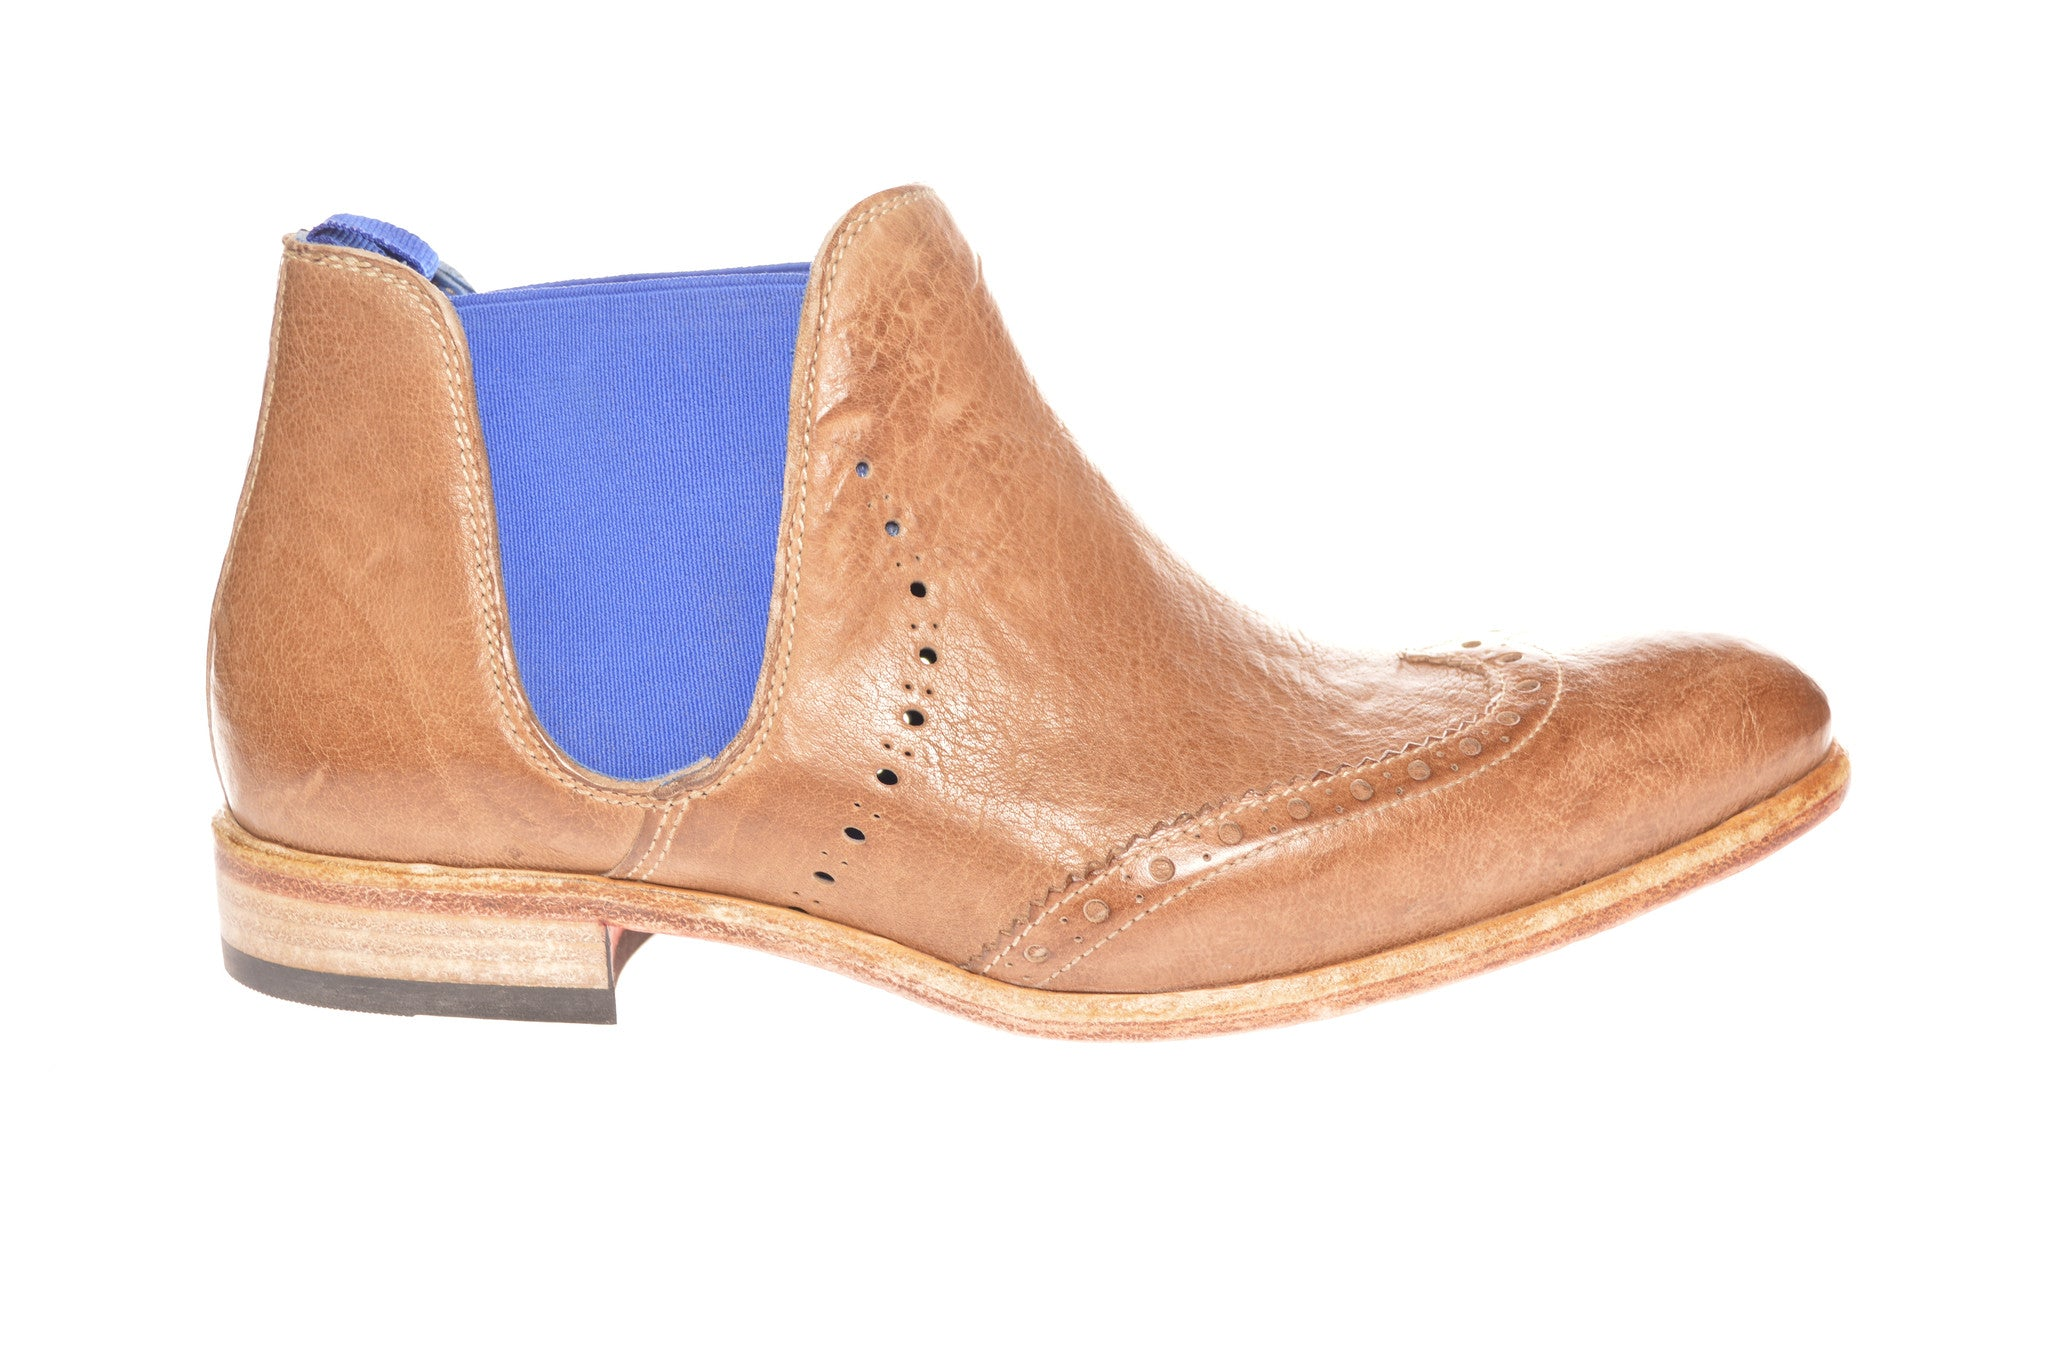 Lorenzi Women Shoes / BURATTATO CARSON